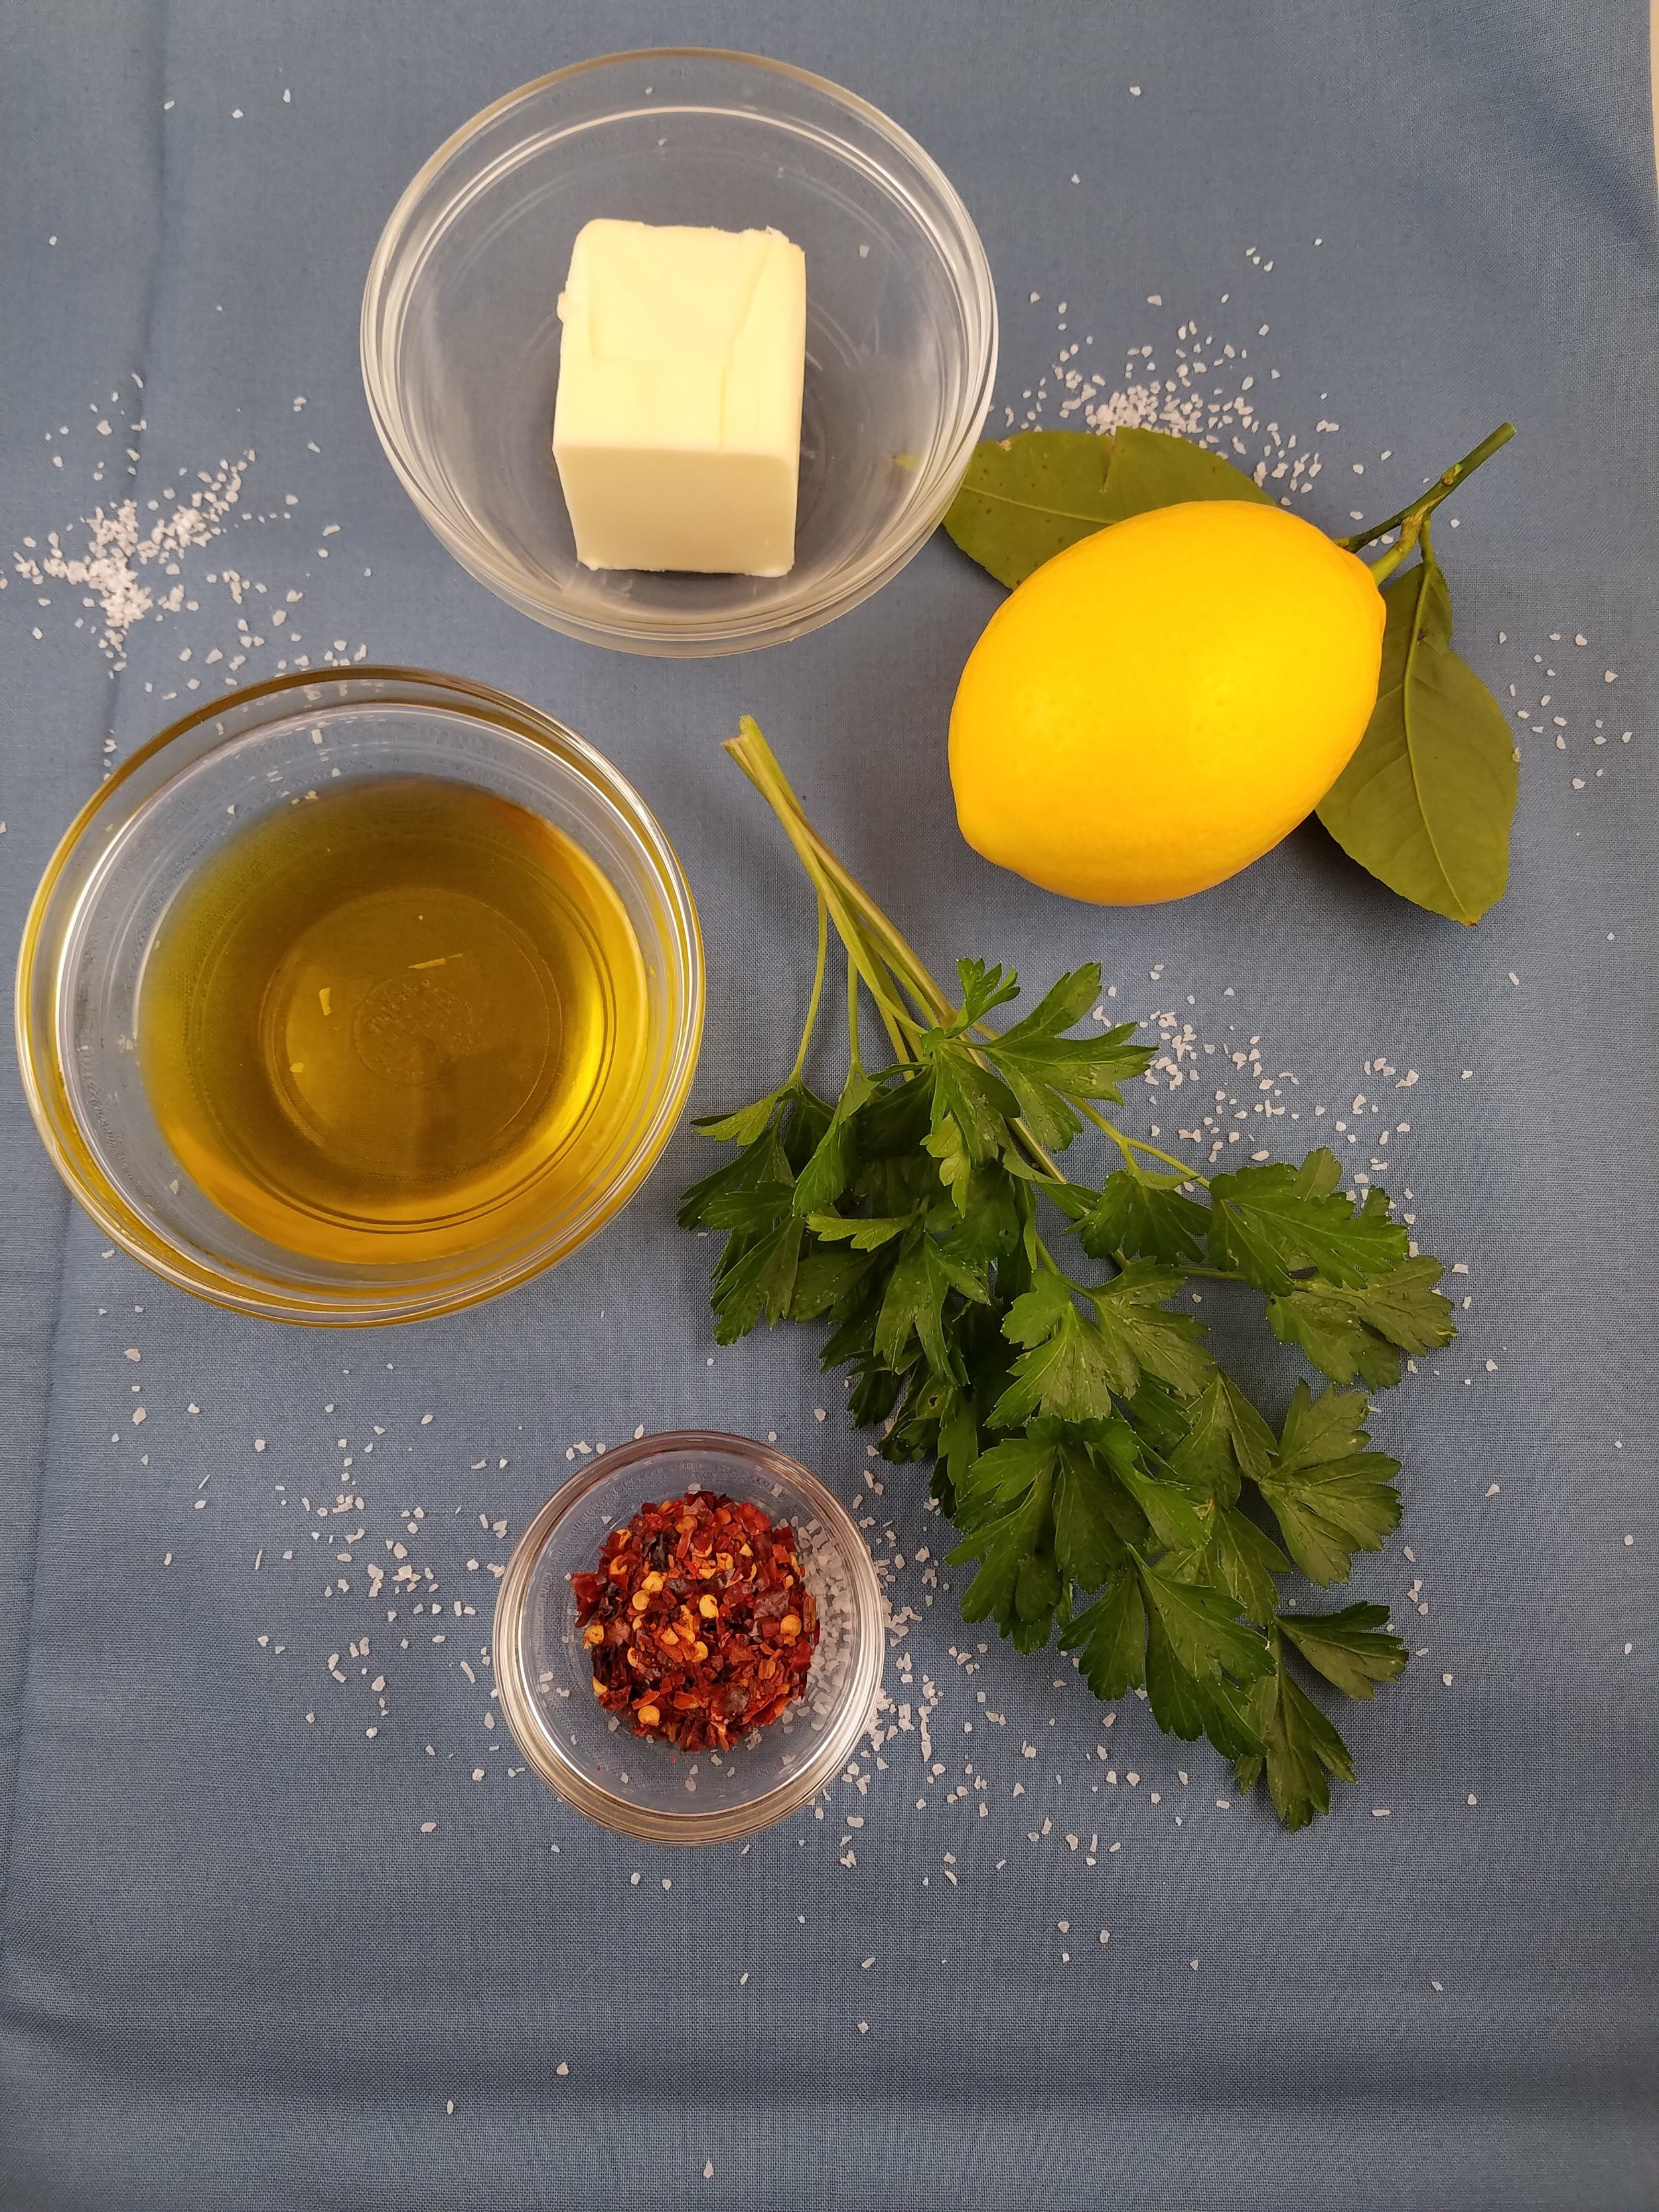 SCAMPI INGREDIENTS